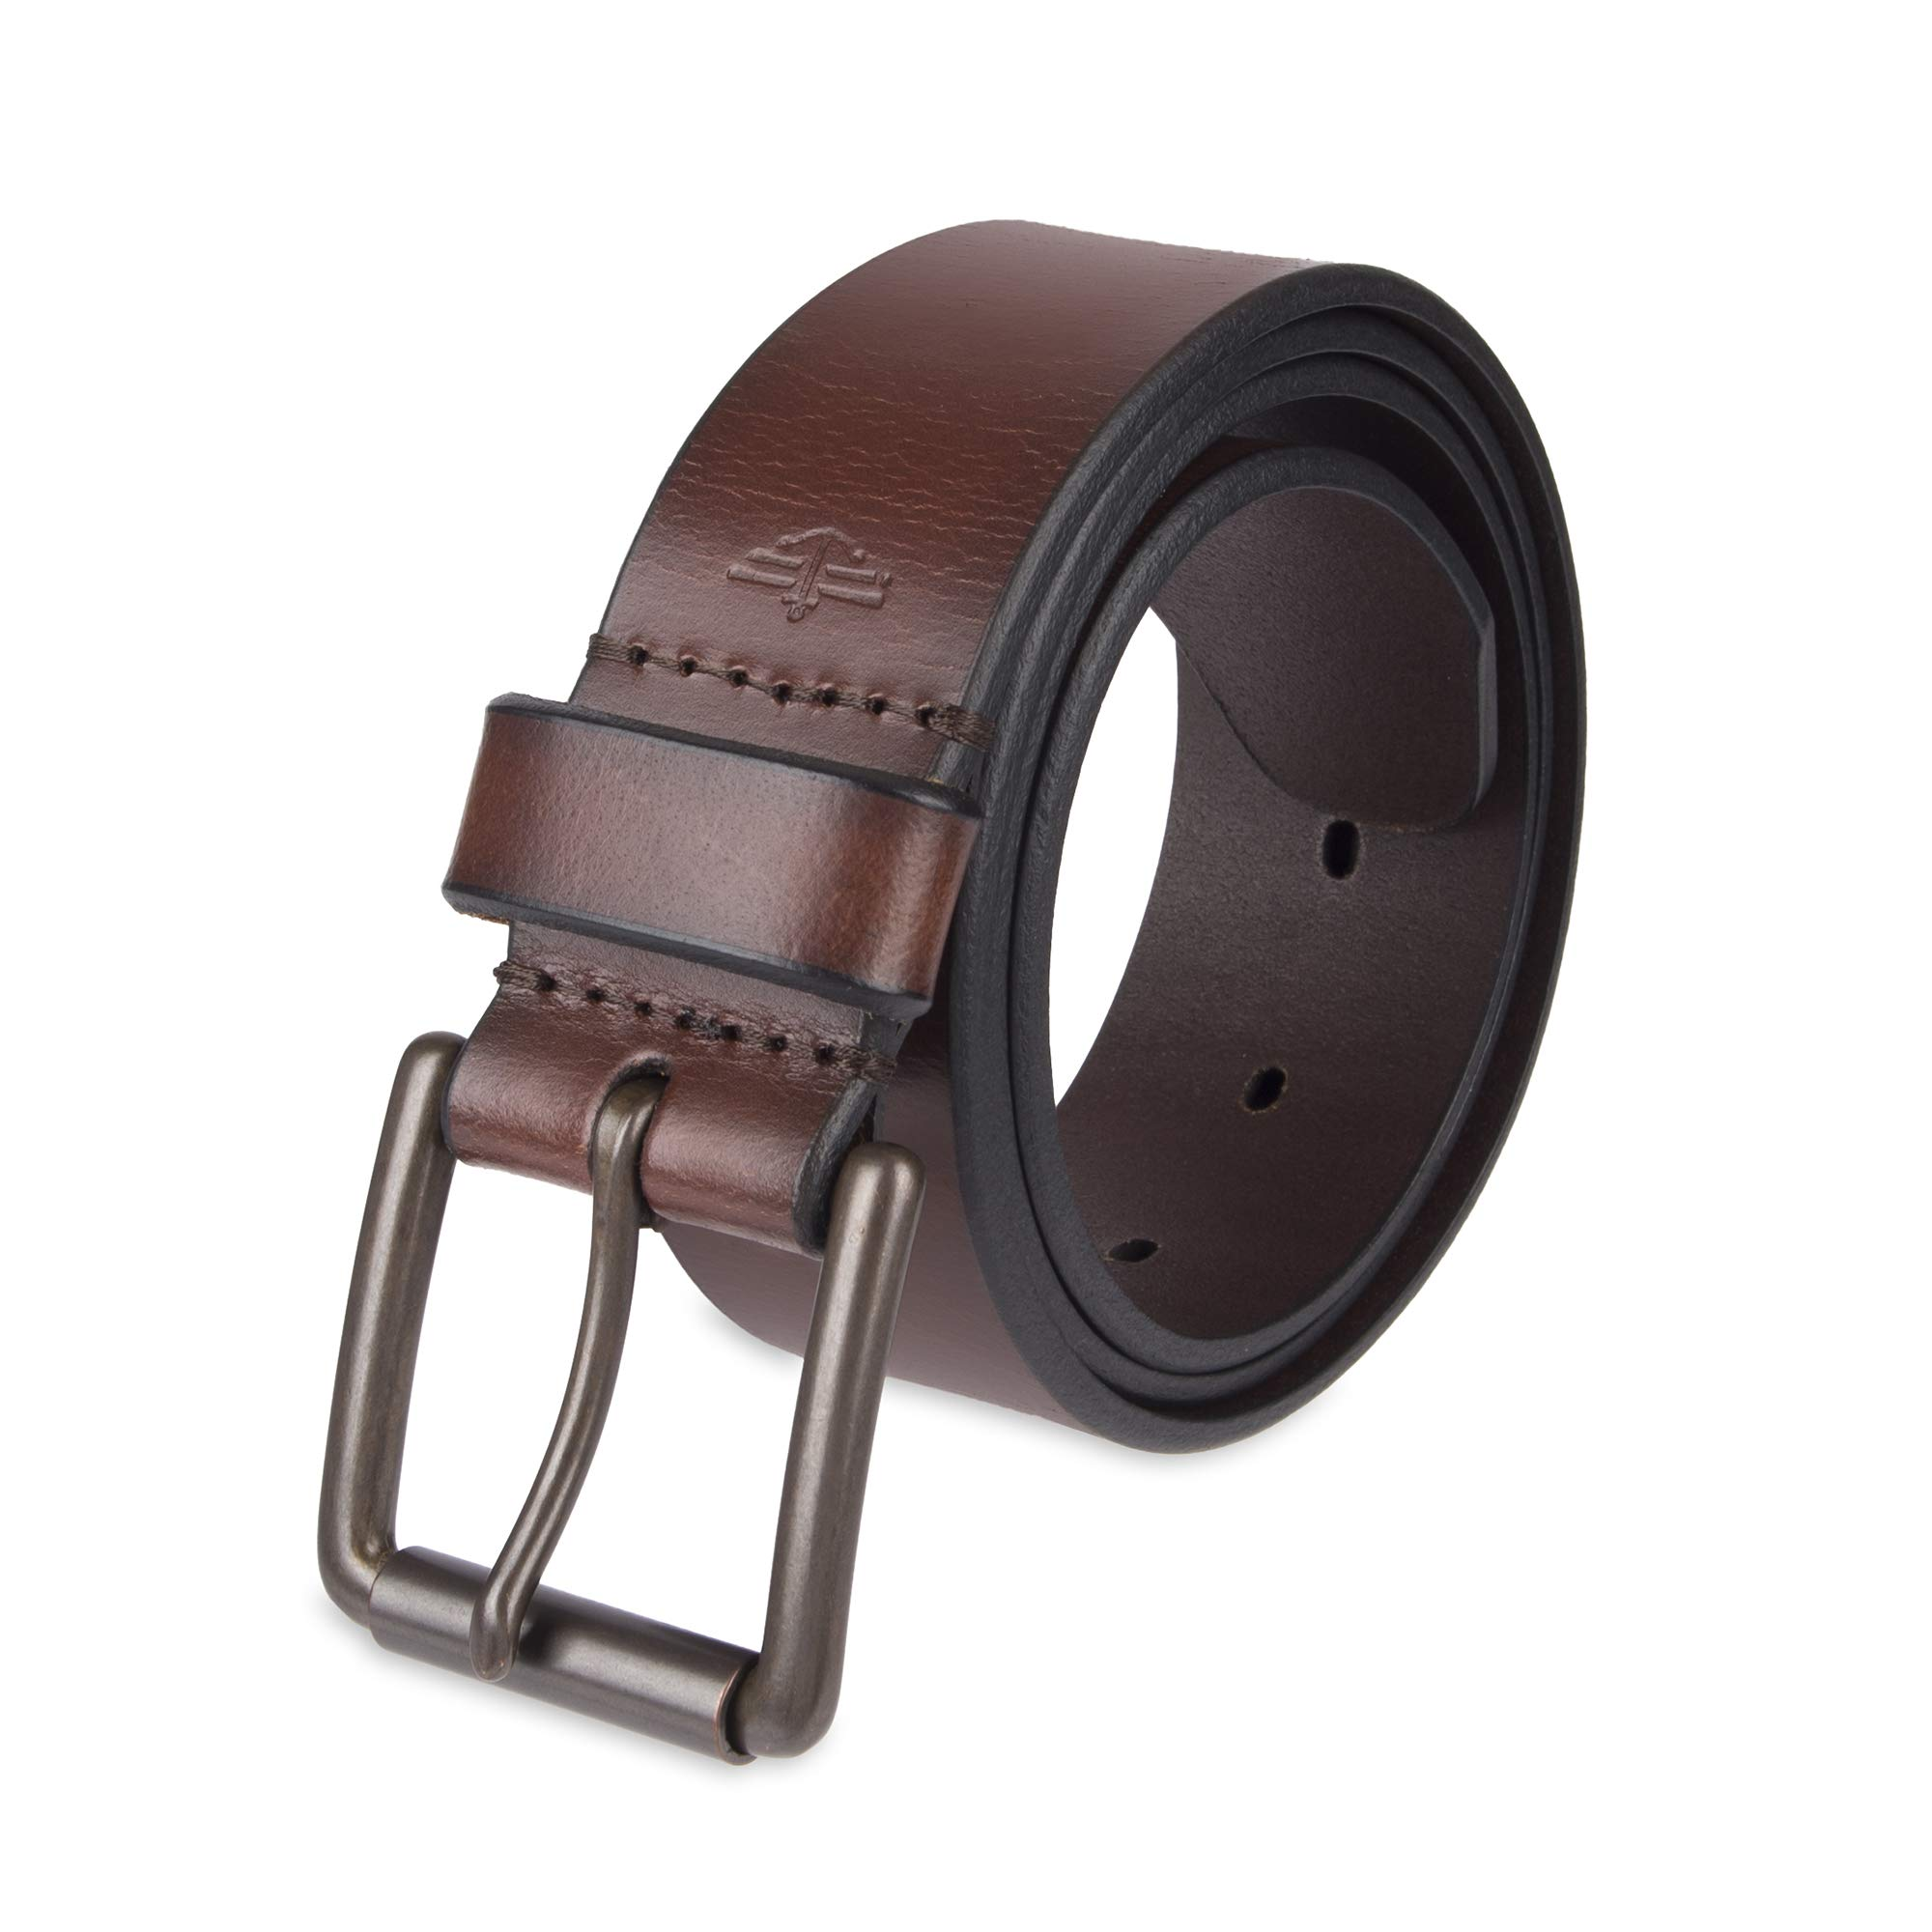 Dockers Men's Casual Leather Belt - 100% Soft Top Grain Genuine Leather Strap with Classic Prong Buckle, Brown,36